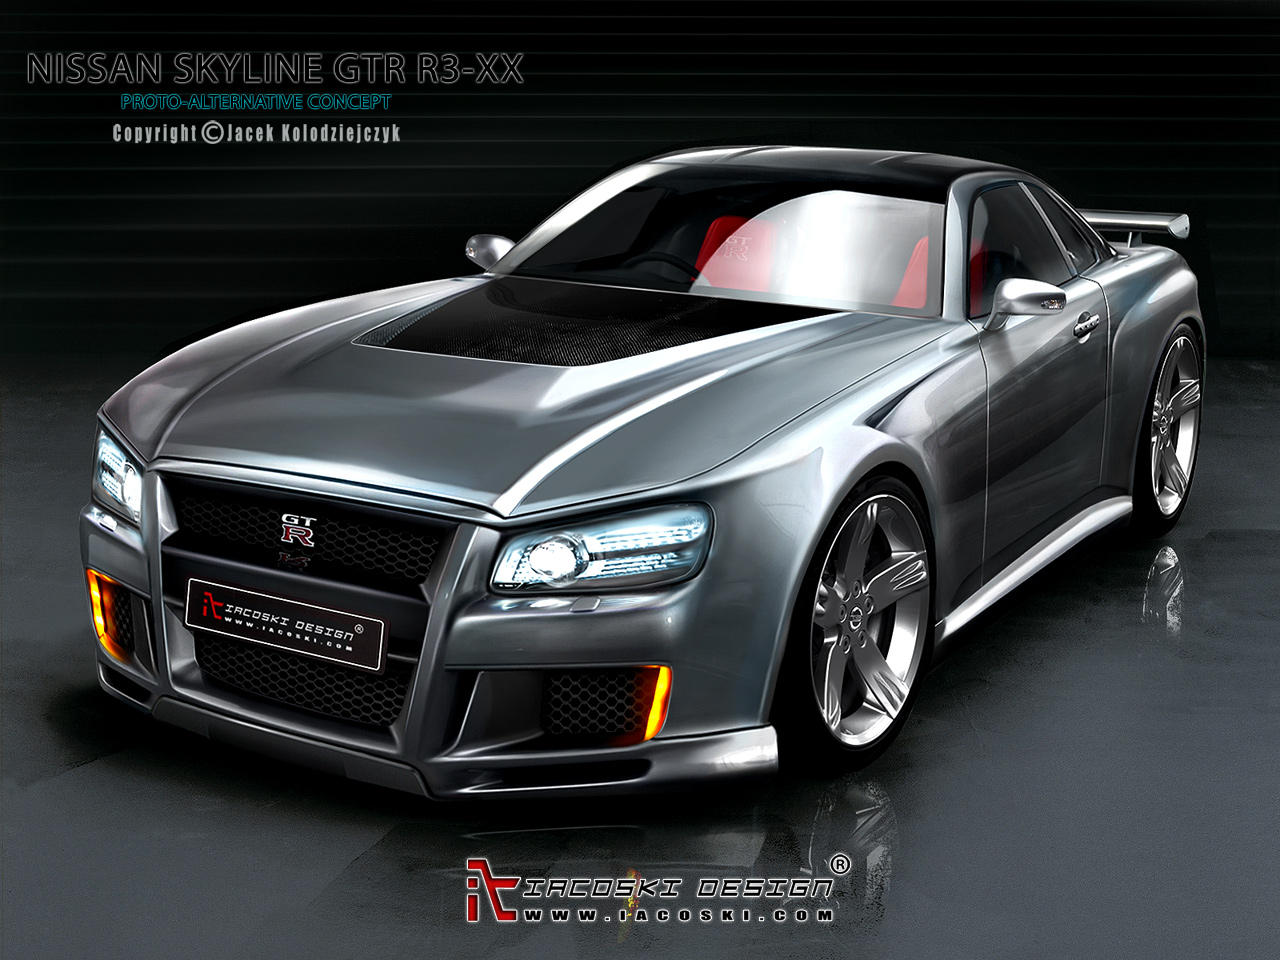 concepts car and skyline - photo #31